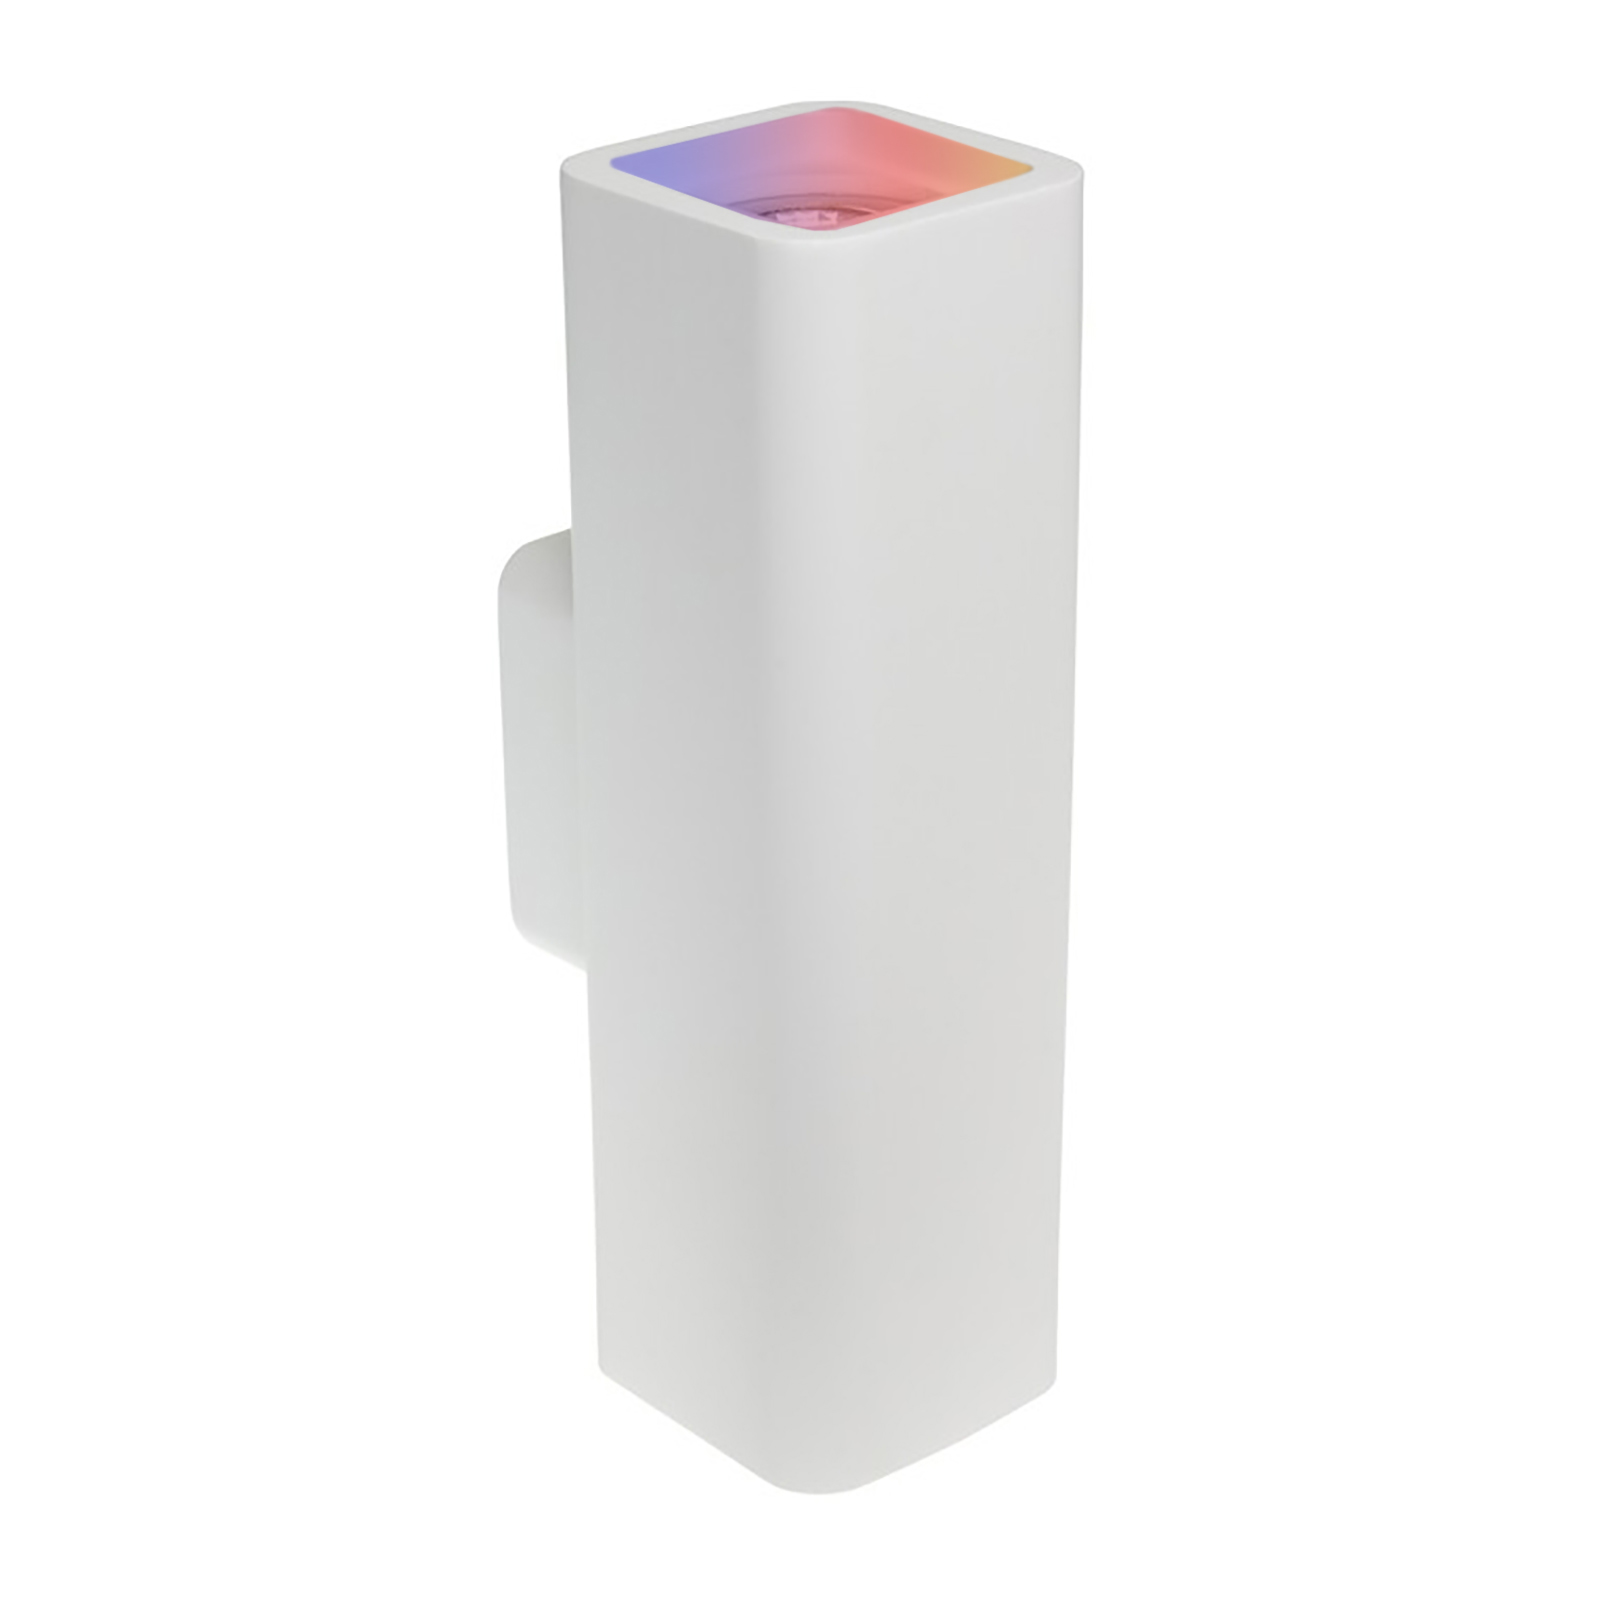 White LED wall light 16W GU10 plaster lamp with double RGB light emission